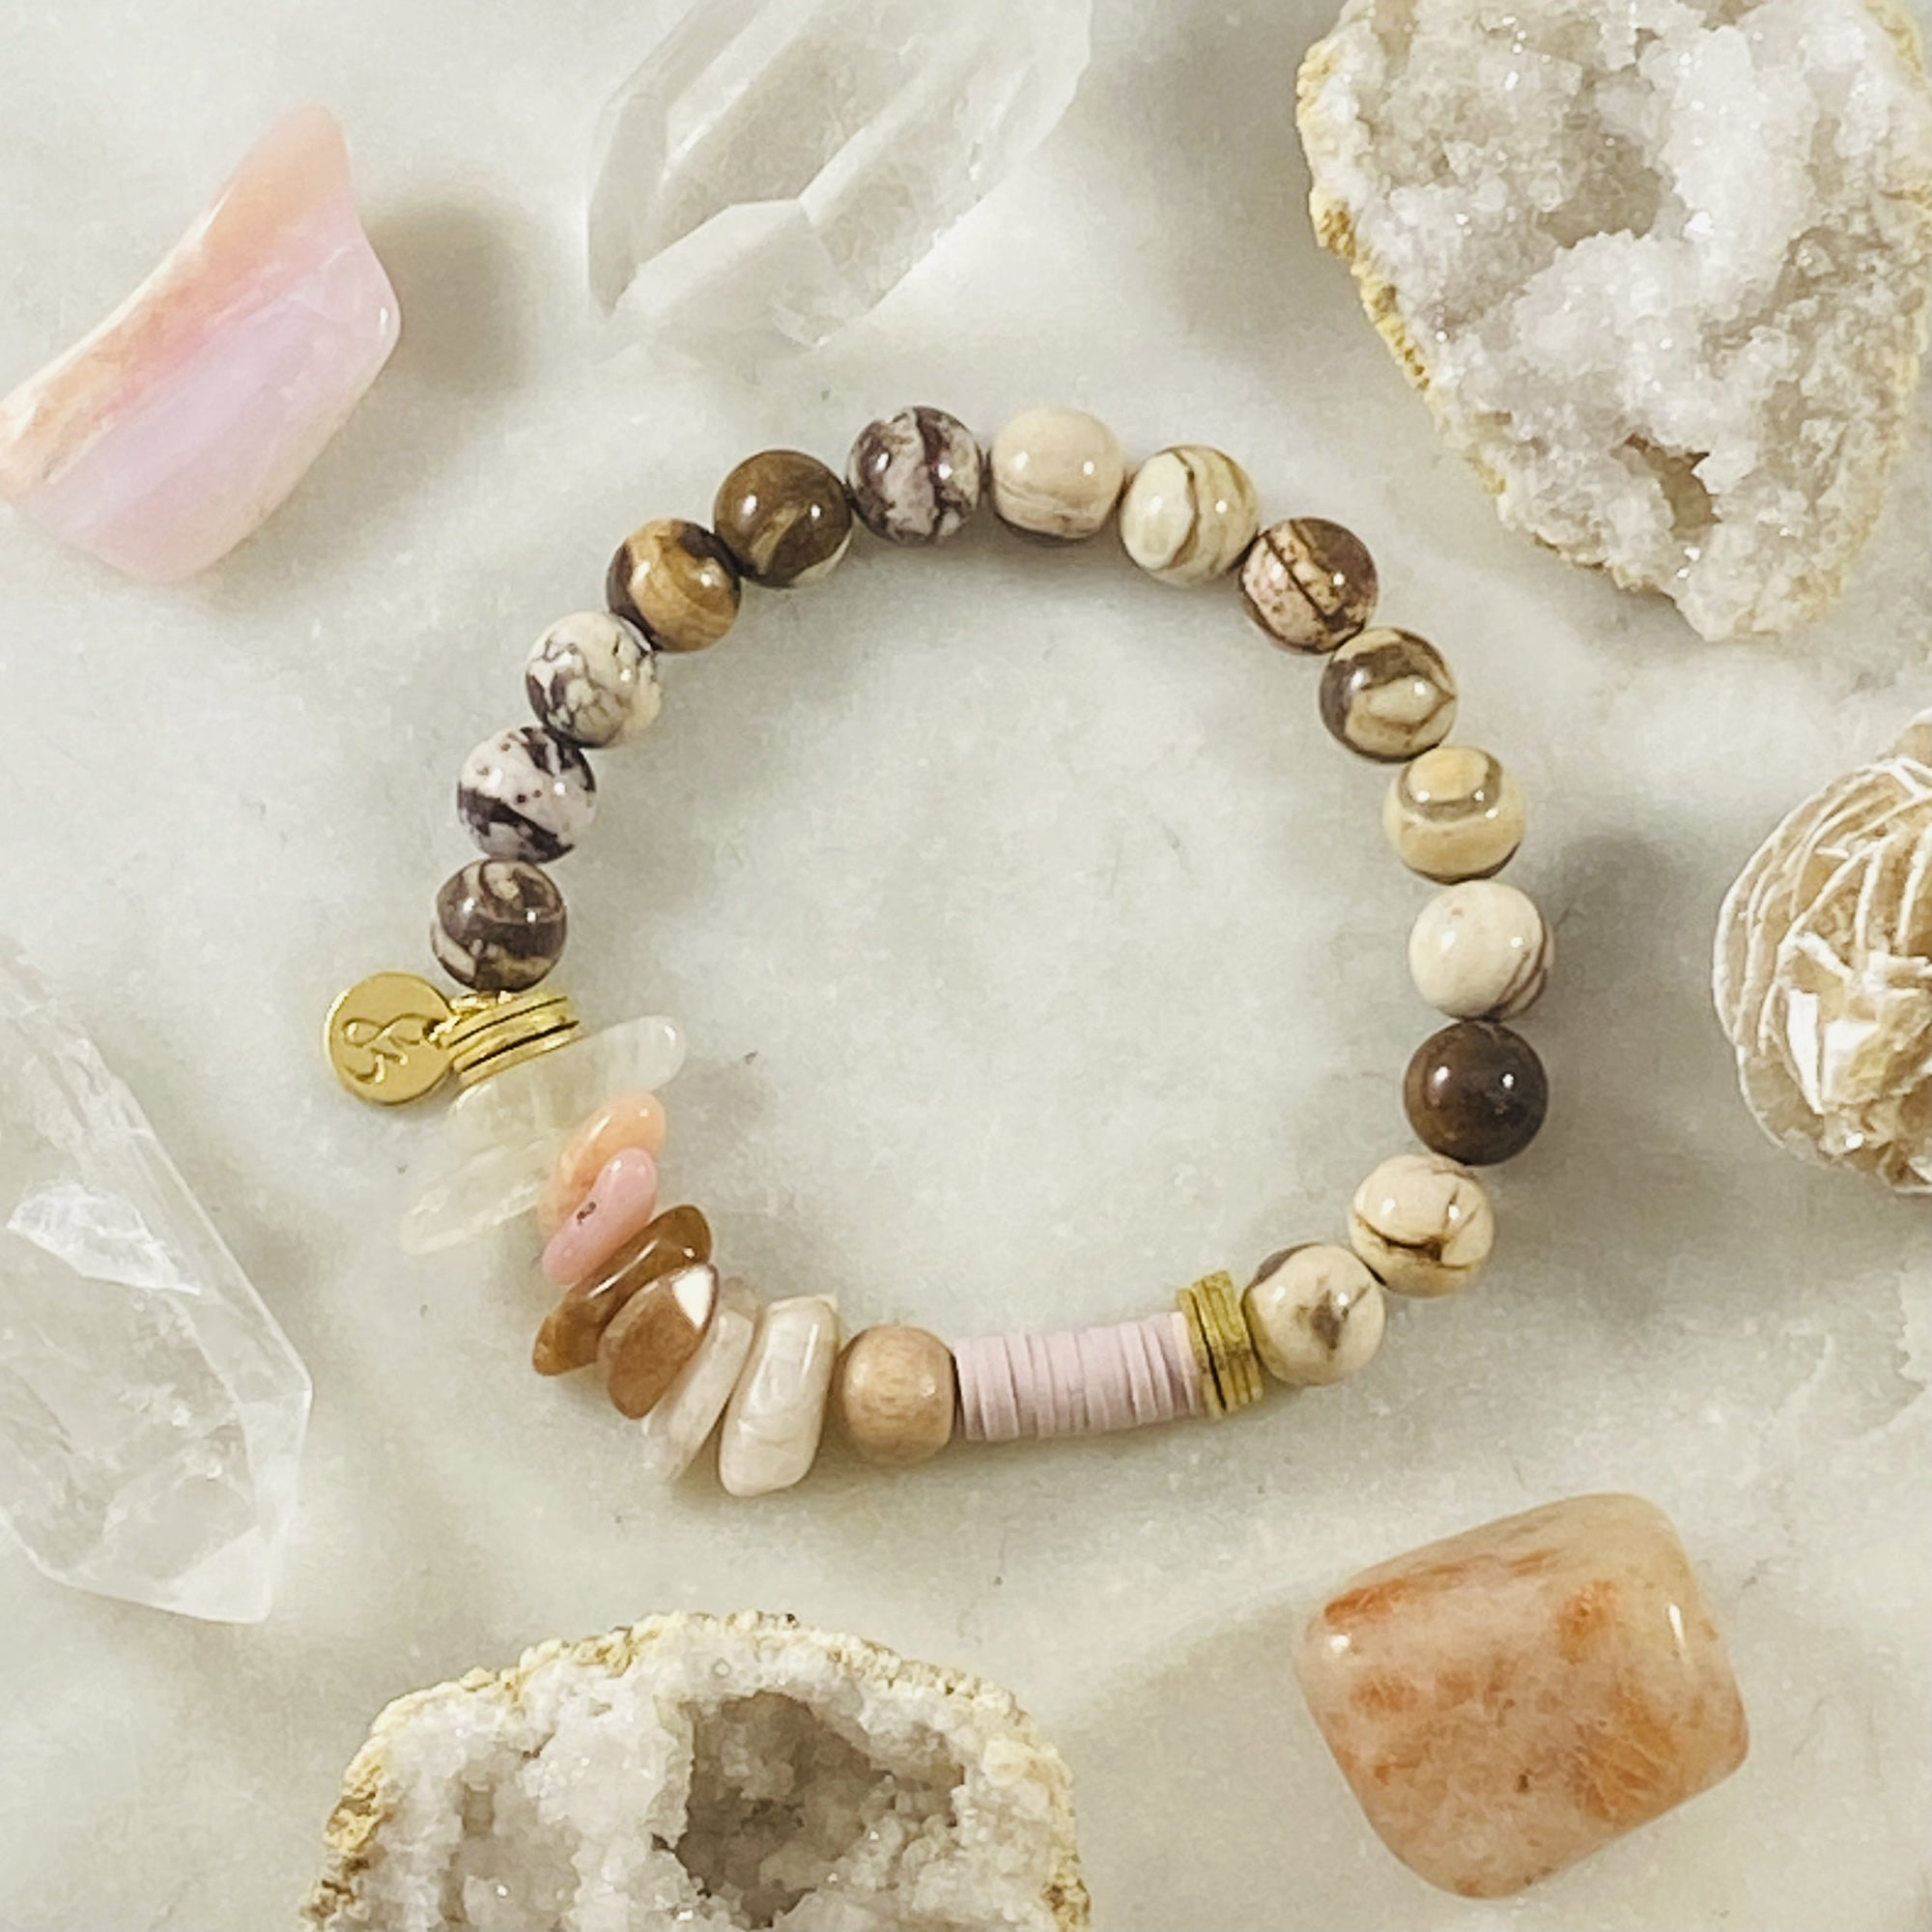 Handmade gemstone bracelet for self-love